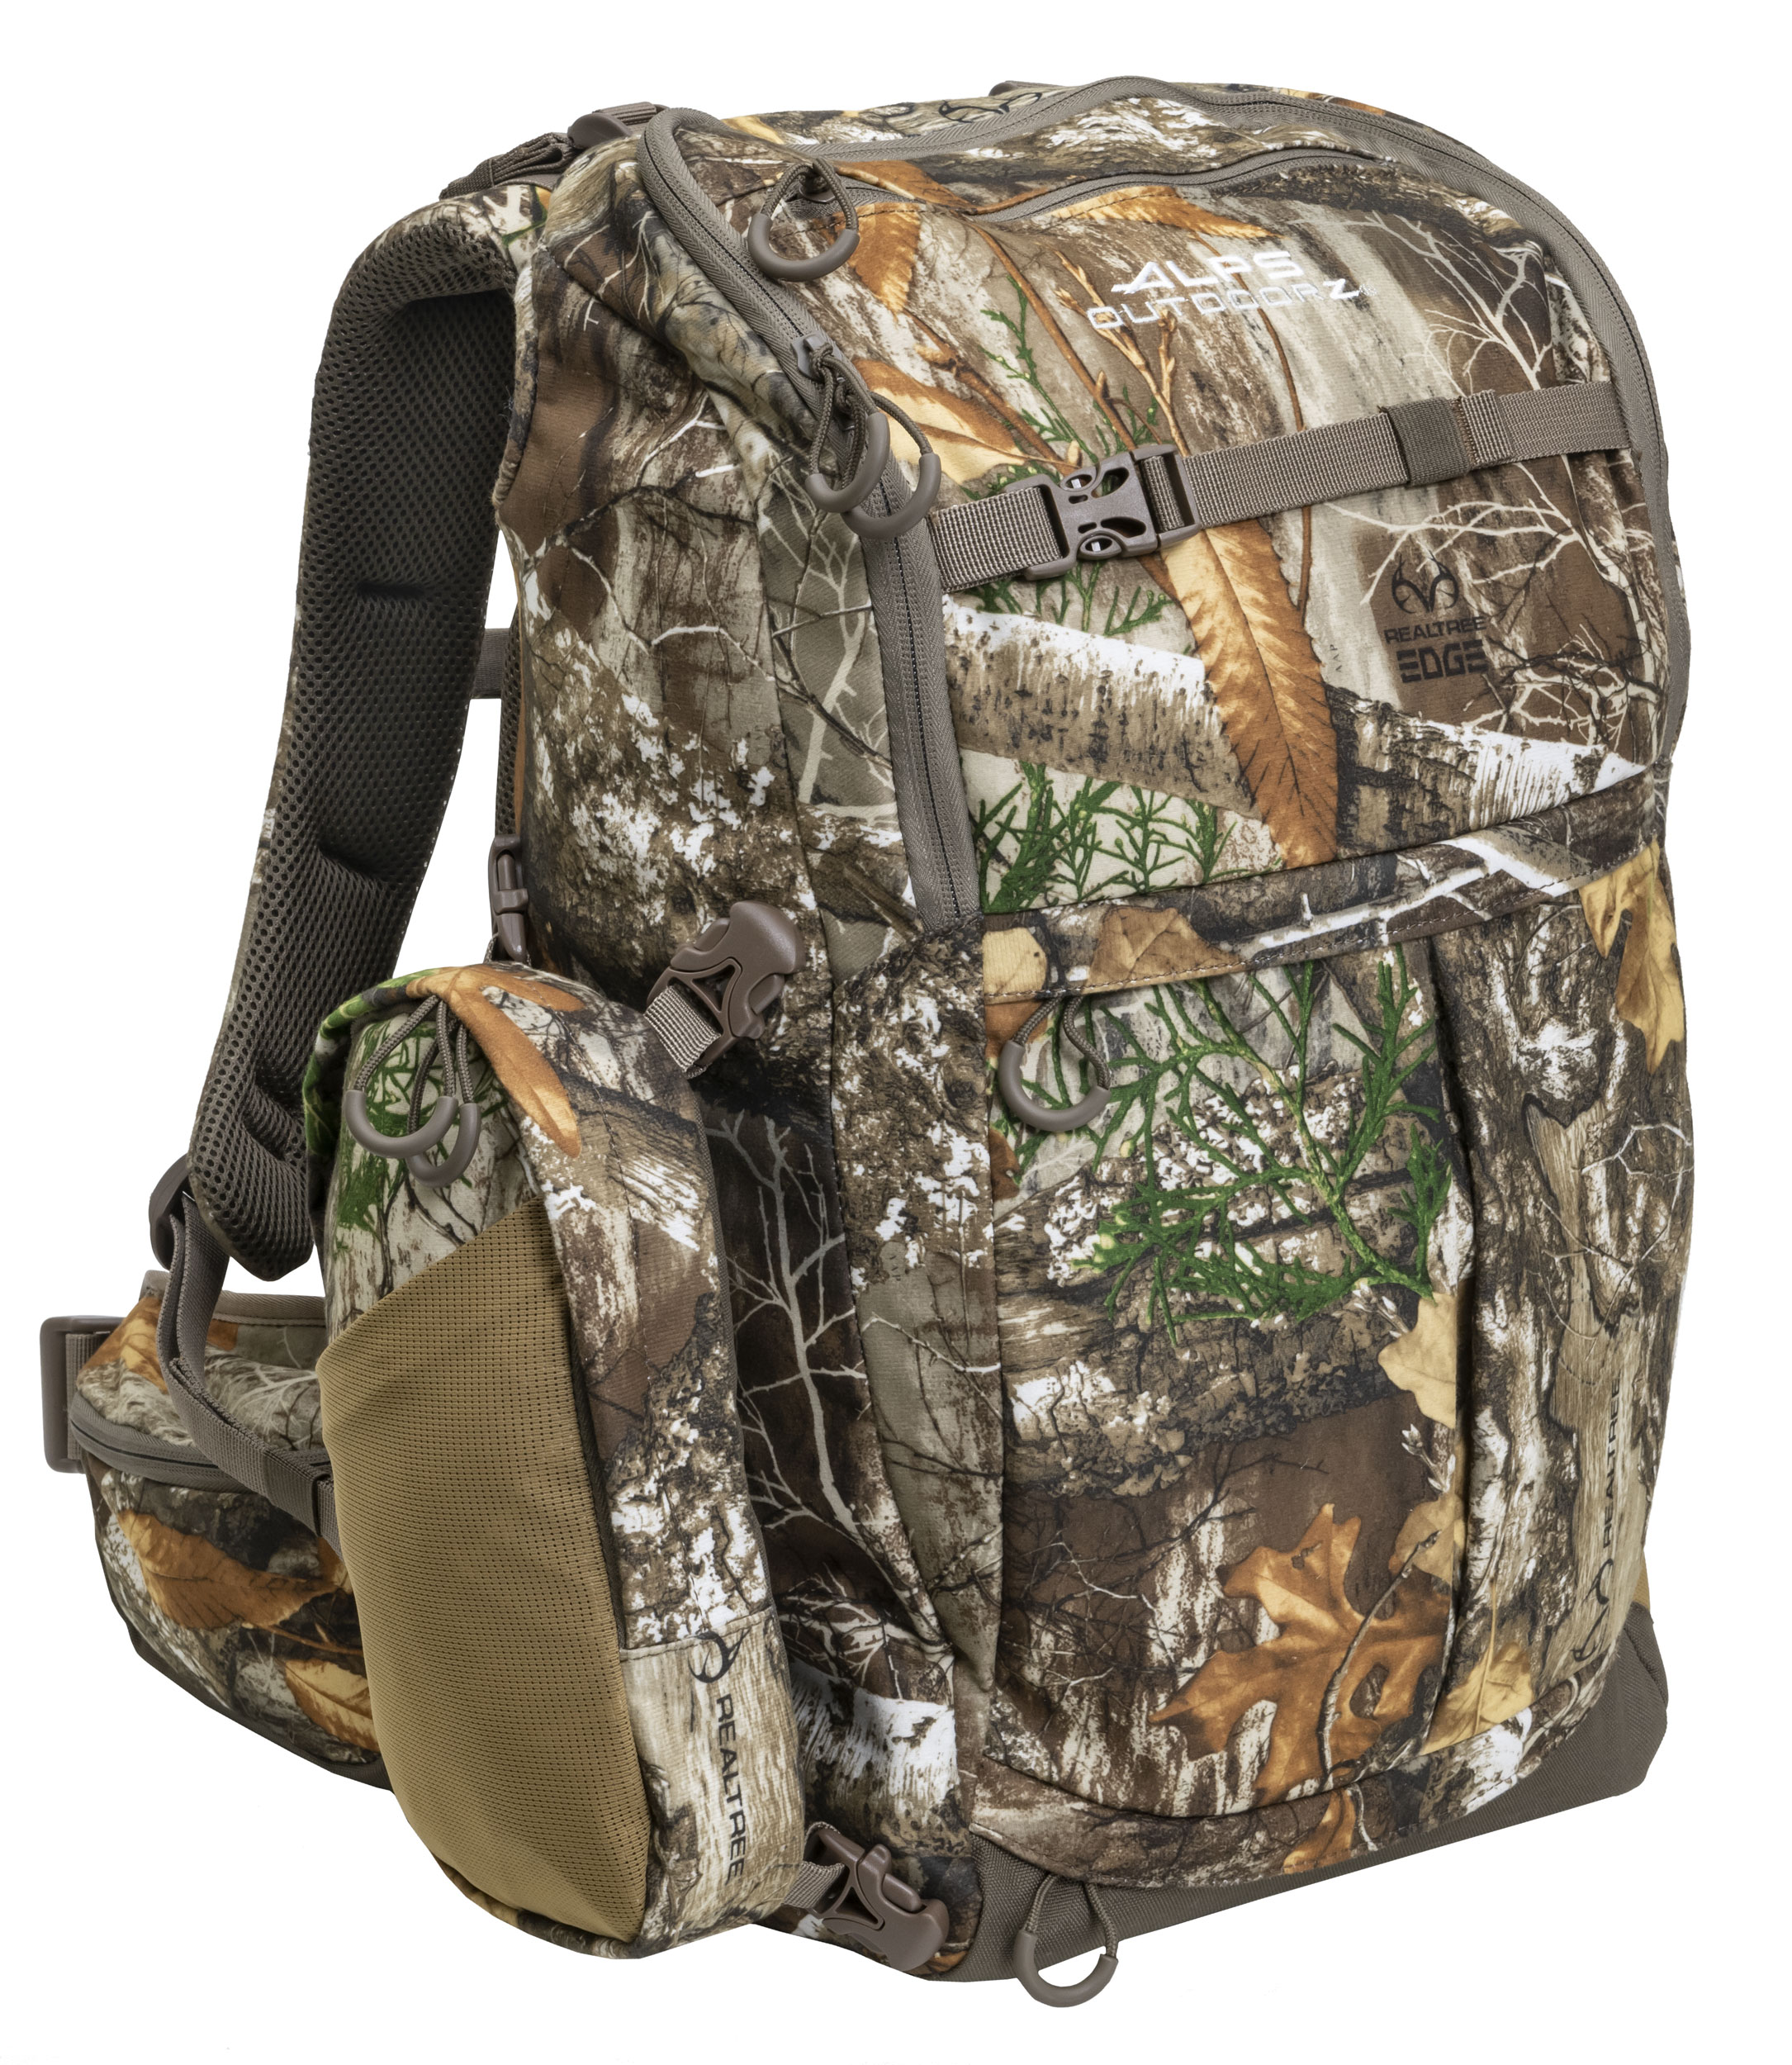 7faf24f926a55 Best Hunting Gear and Packs | ALPS OutdoorZ